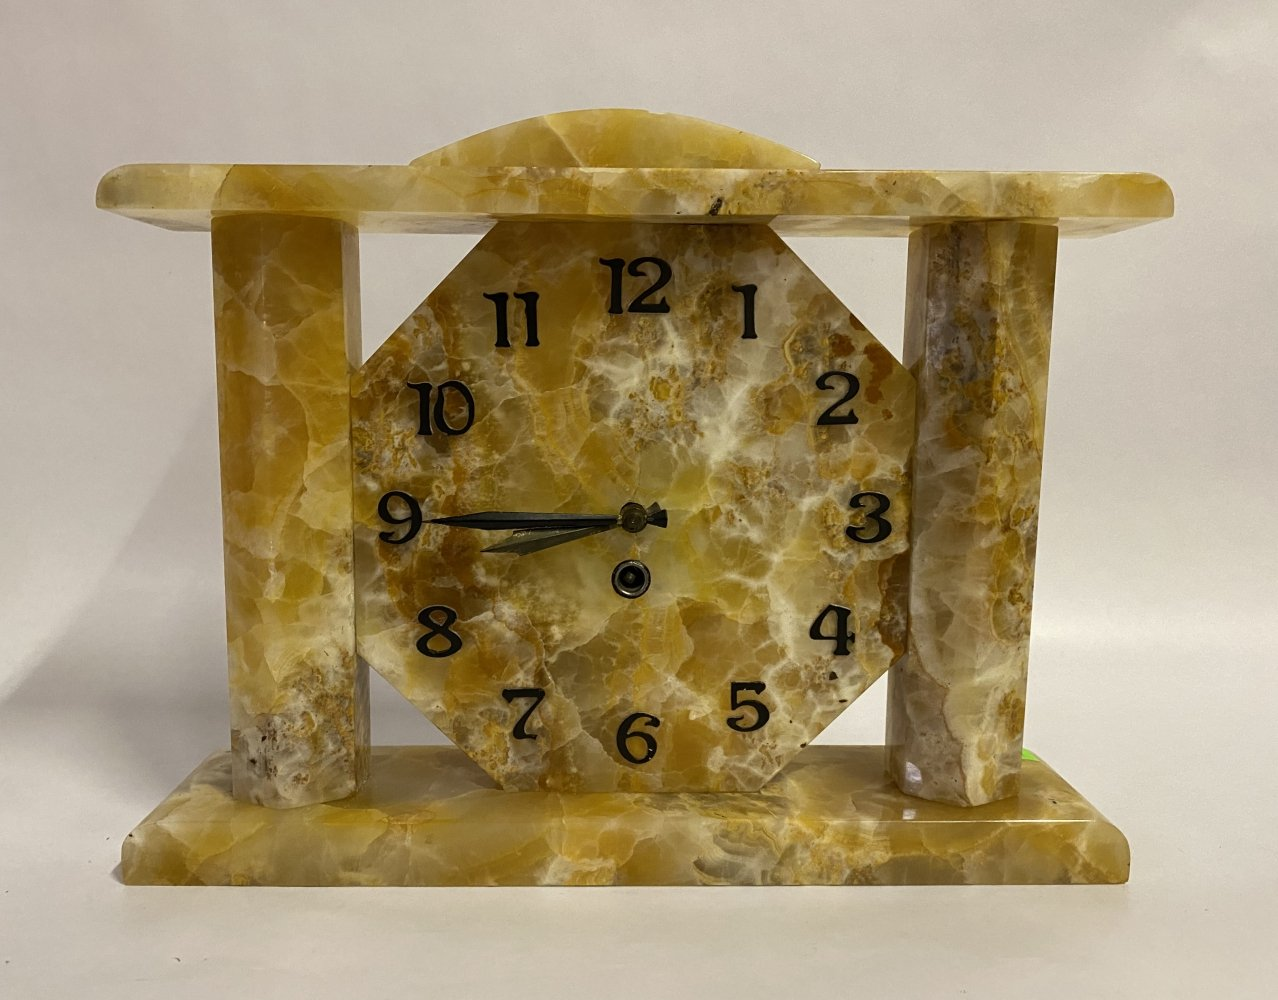 Large art deco mantel clock made from gold ónyx, 1930s